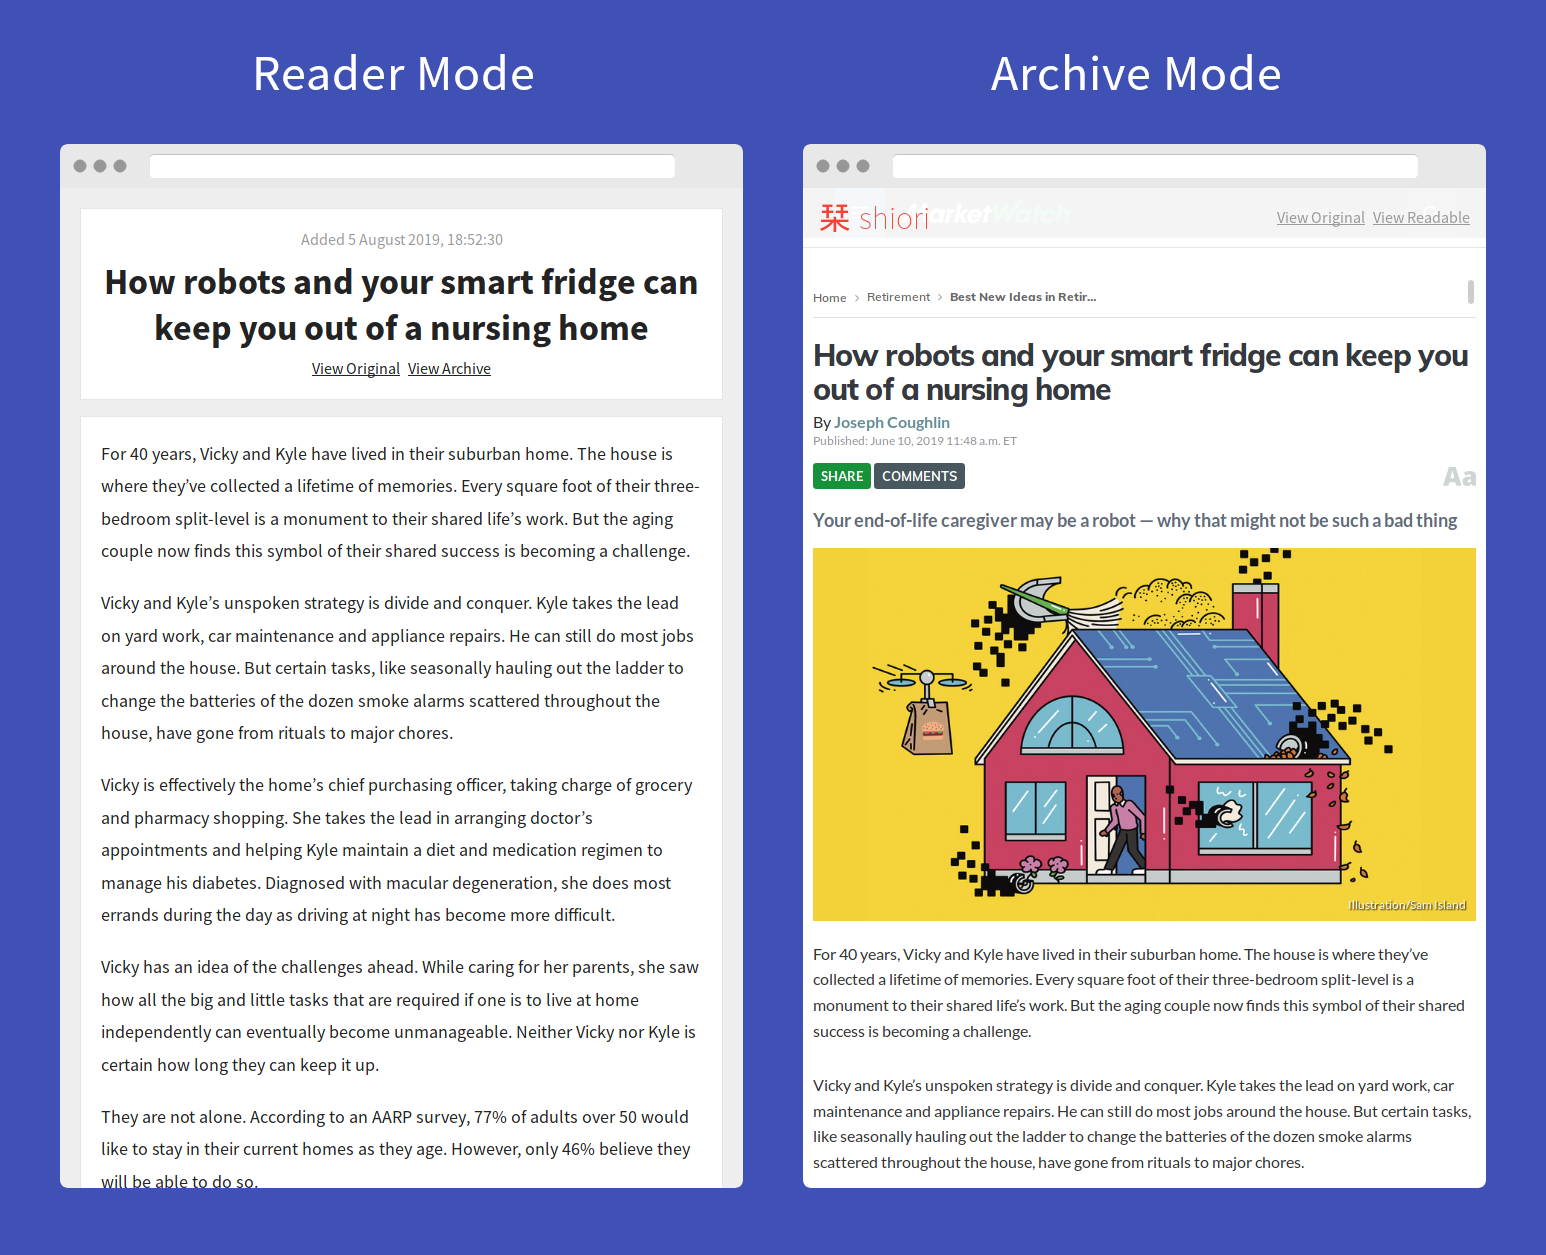 Comparison of reader mode and archive mode